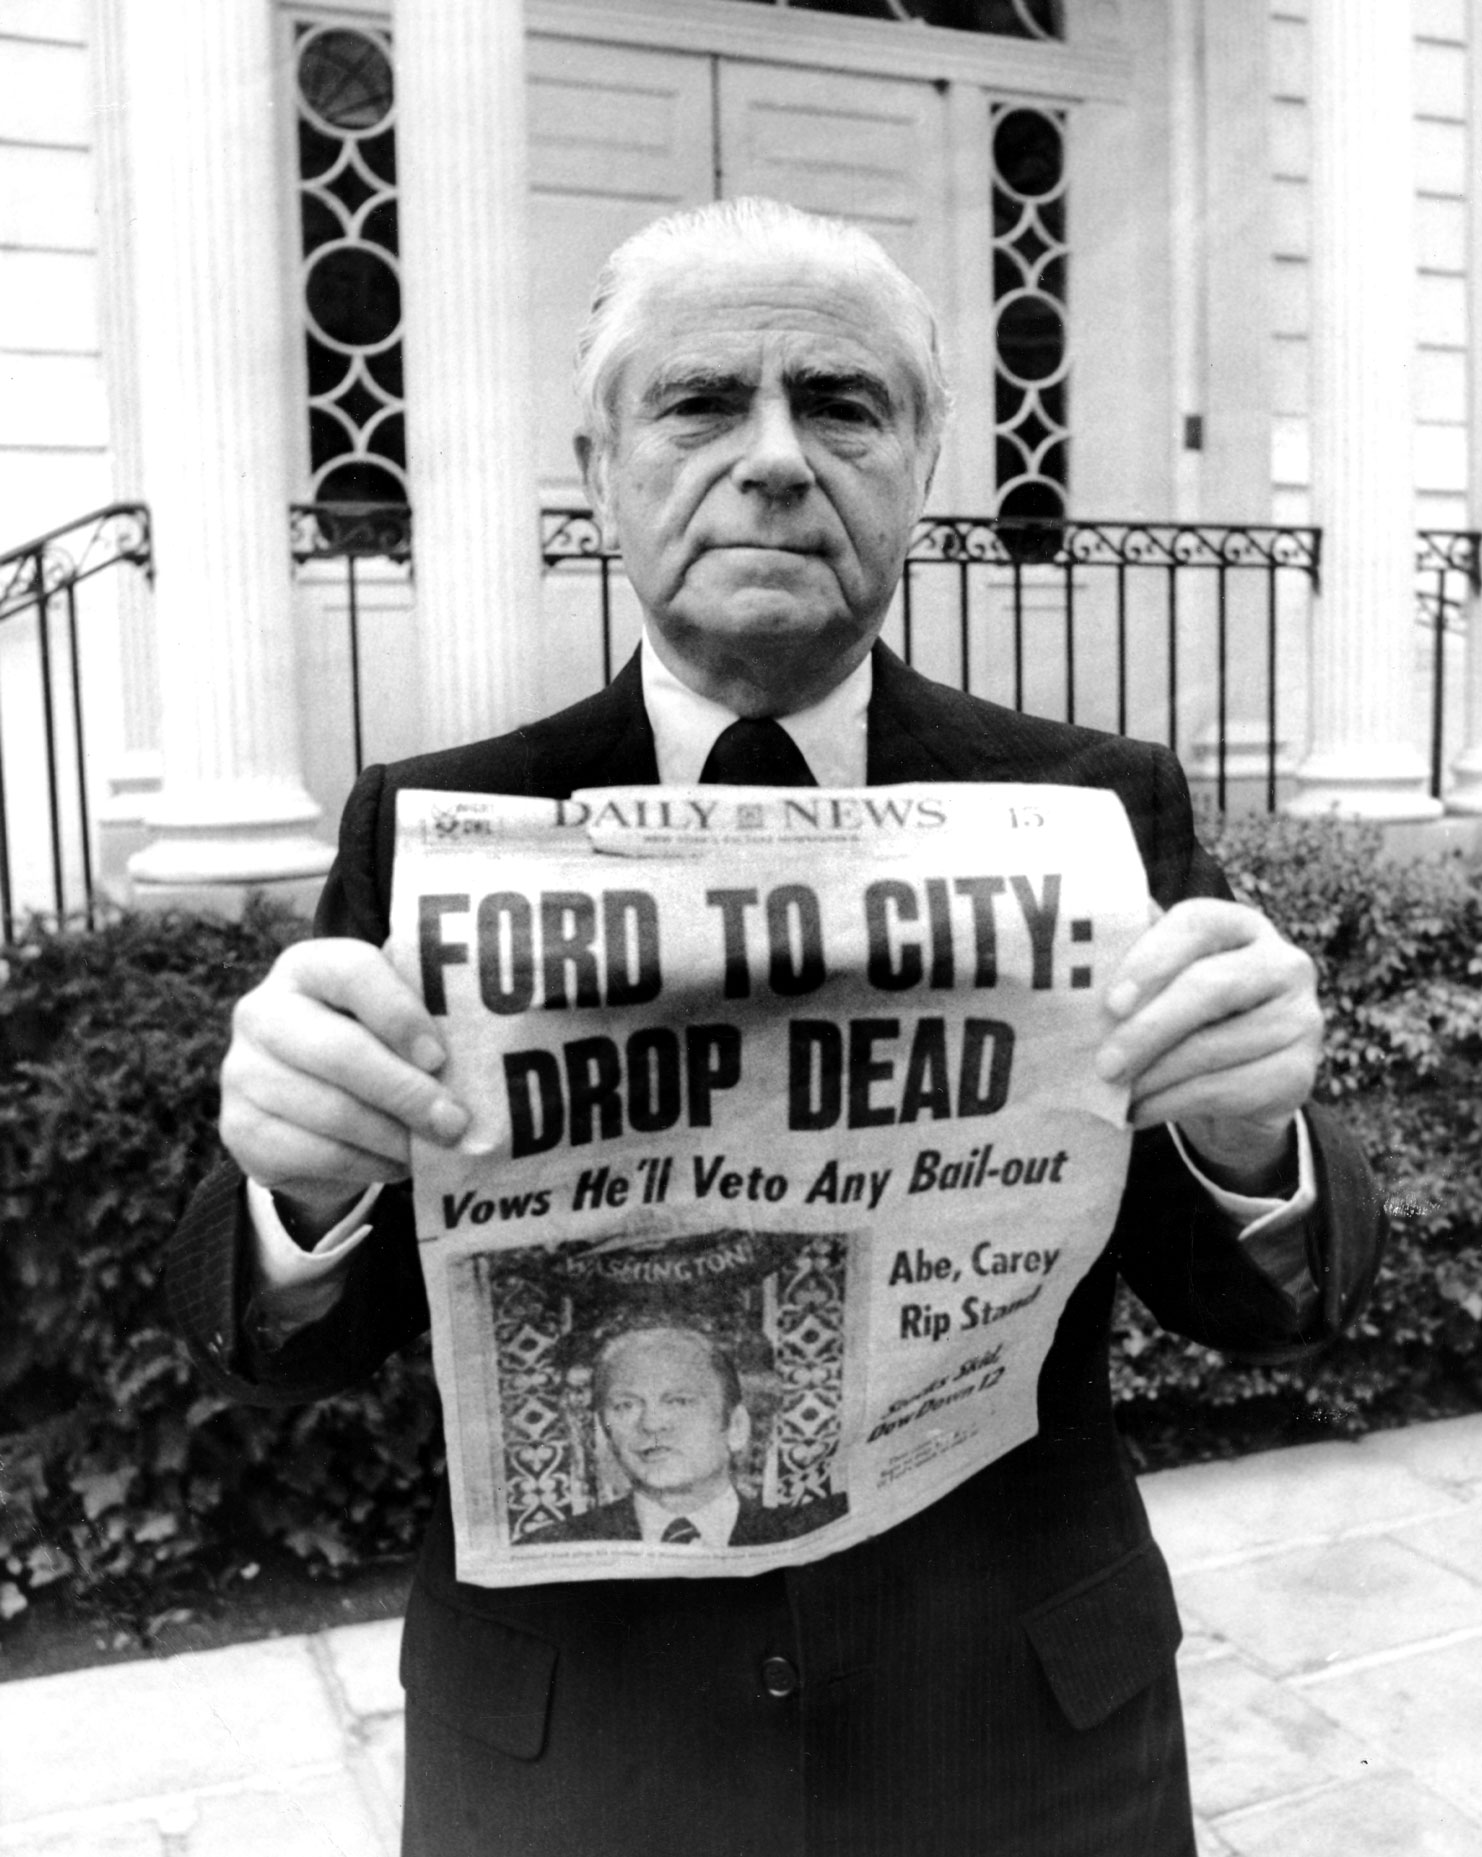 "In 1975, New York City was at the brink of financial collapse. President Gerald Ford gave a speech saying that he would oppose any federal assistance to help save the City. ""Ford to City: Drop Dead"" was the famous headline that ran on October 30th, 1975 in the New York Daily News, as shown here held by Abraham Beame, Mayor of New York City from 1974-1977. Credit: Getty Images"